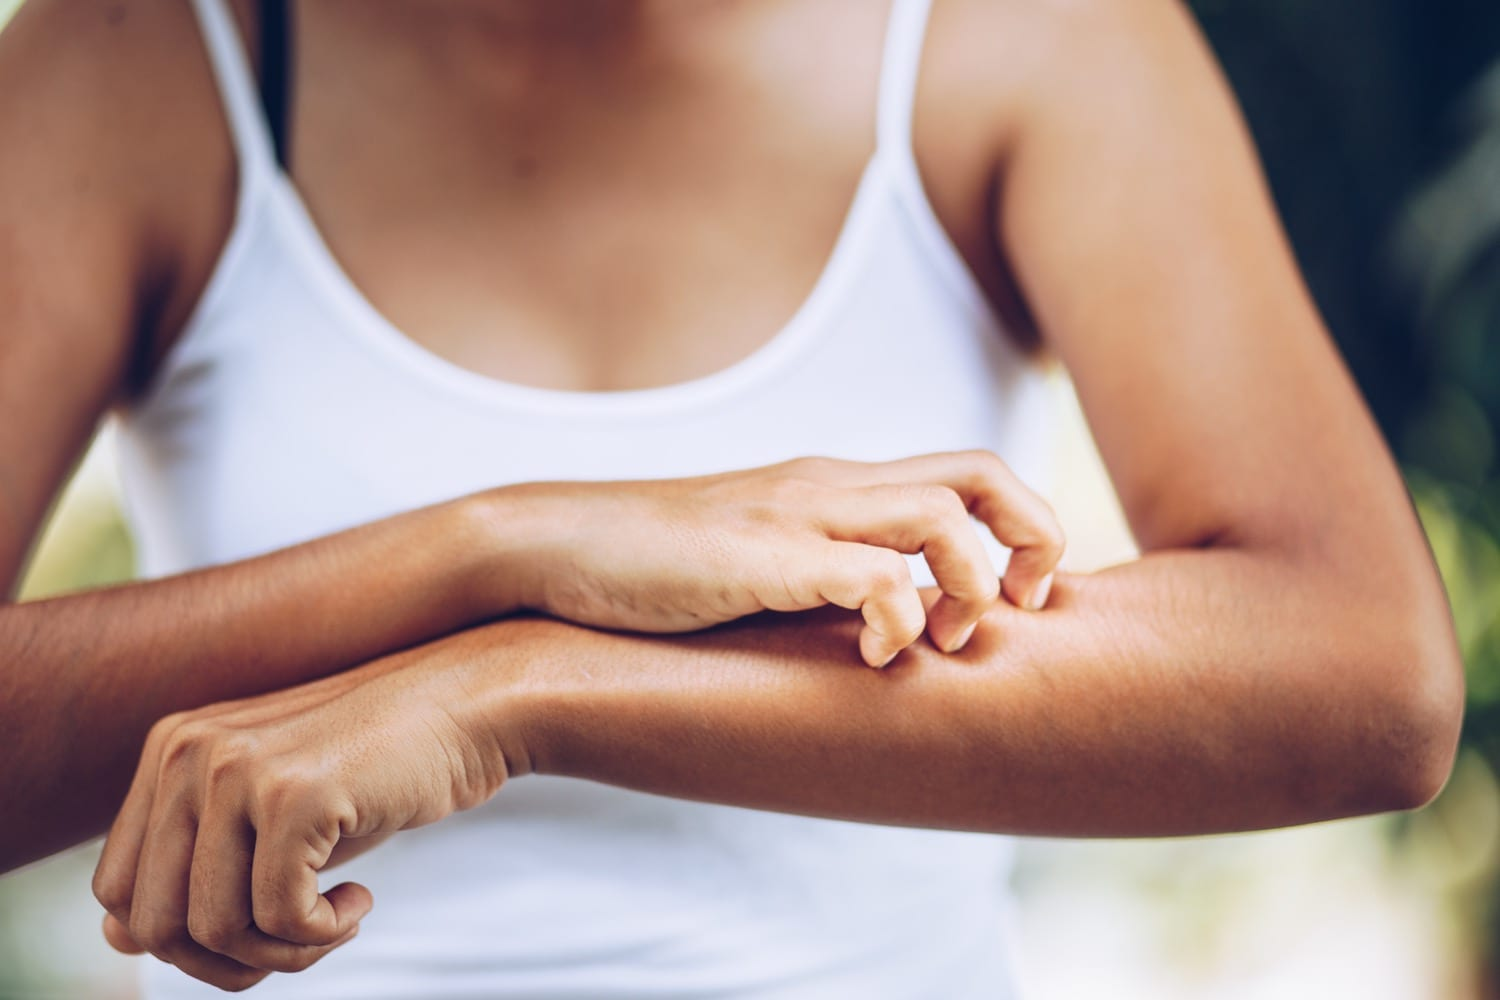 Eczema, or or inflammation of the skin with symptoms of itchy, dry, and red skin,, is a common condition treated successfully by Dr. Max Adler at Max Adler Dermatology in Plano TX.